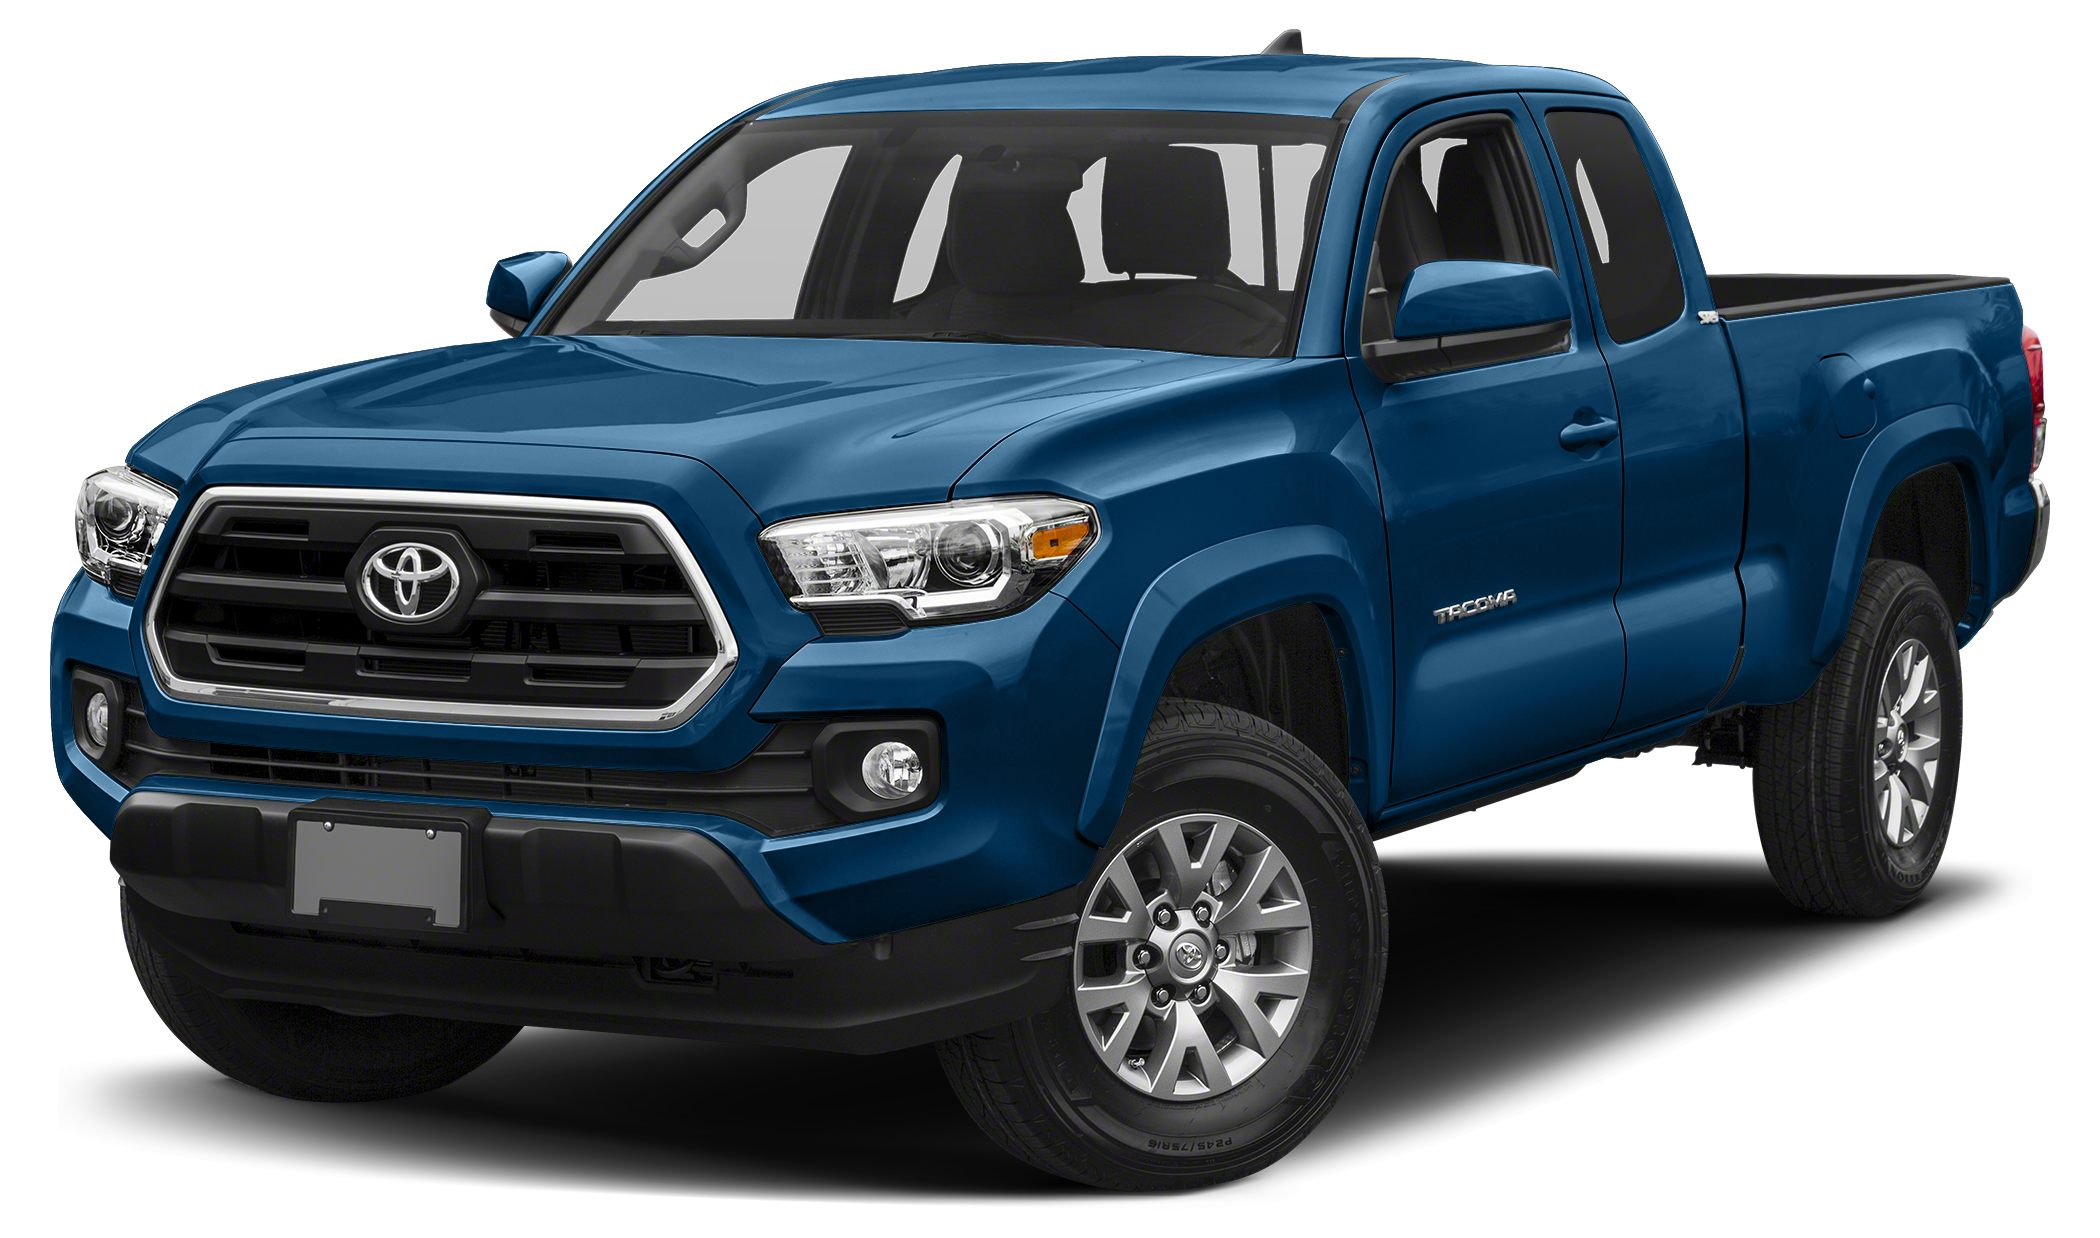 2016 Toyota Tacoma SR5 SR5 trim BLAZING BLUE PEARL exterior and CEMENT GRAY interior CARFAX 1-Ow